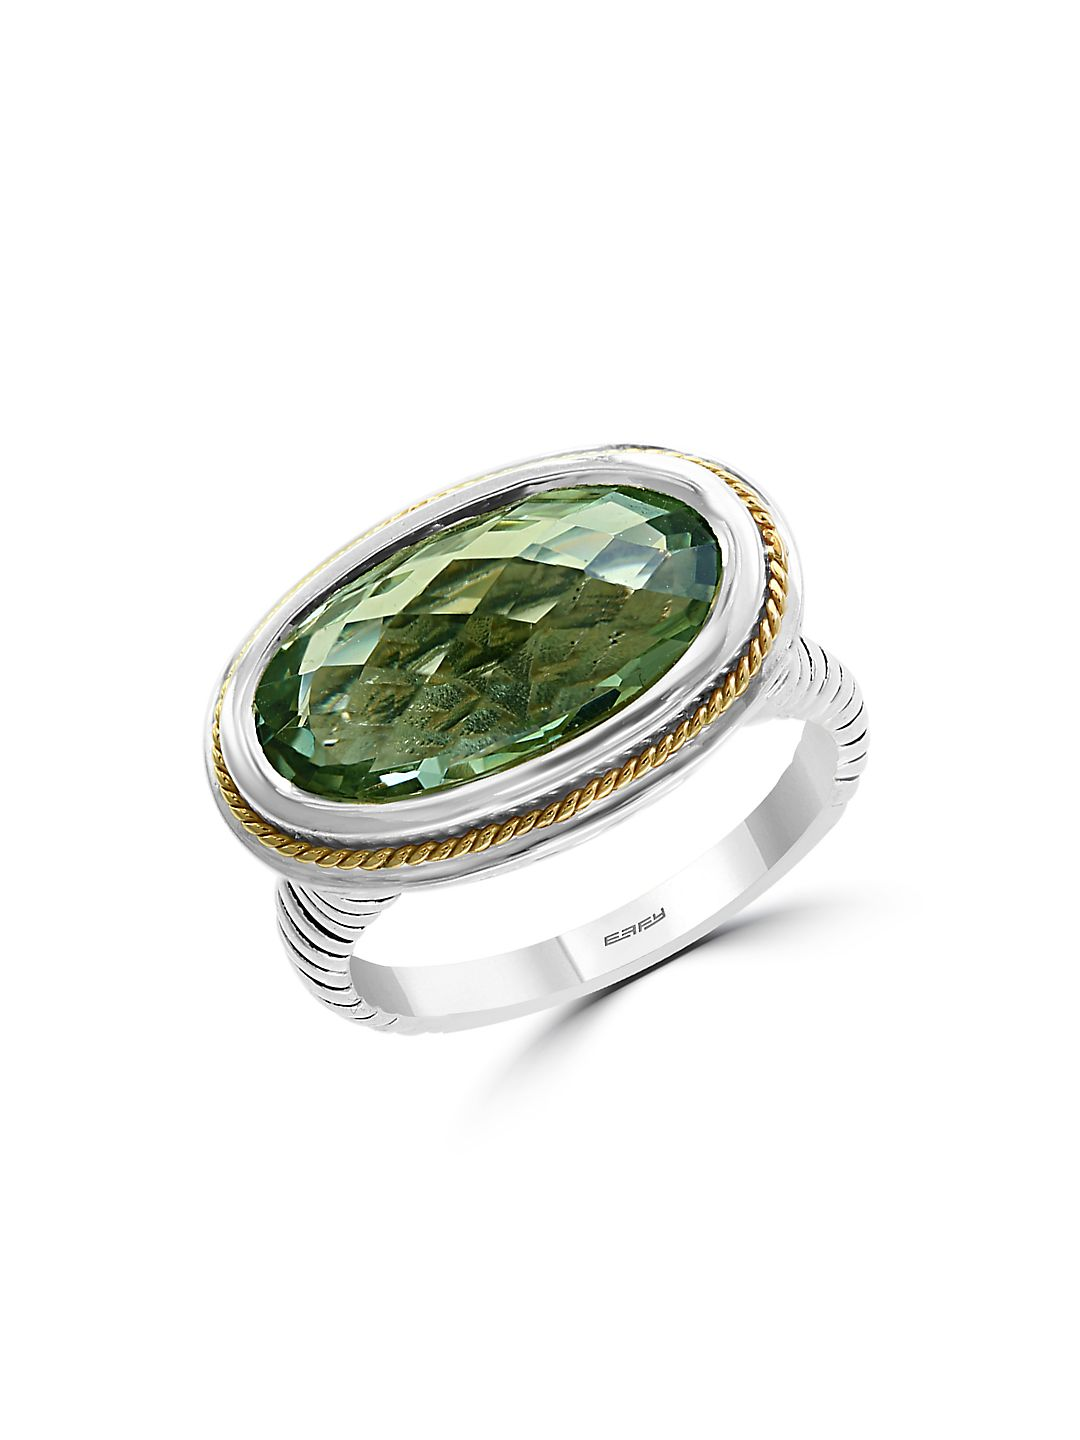 925 Sterling Silver, 18K Yellow Gold & Green Amethyst Ring